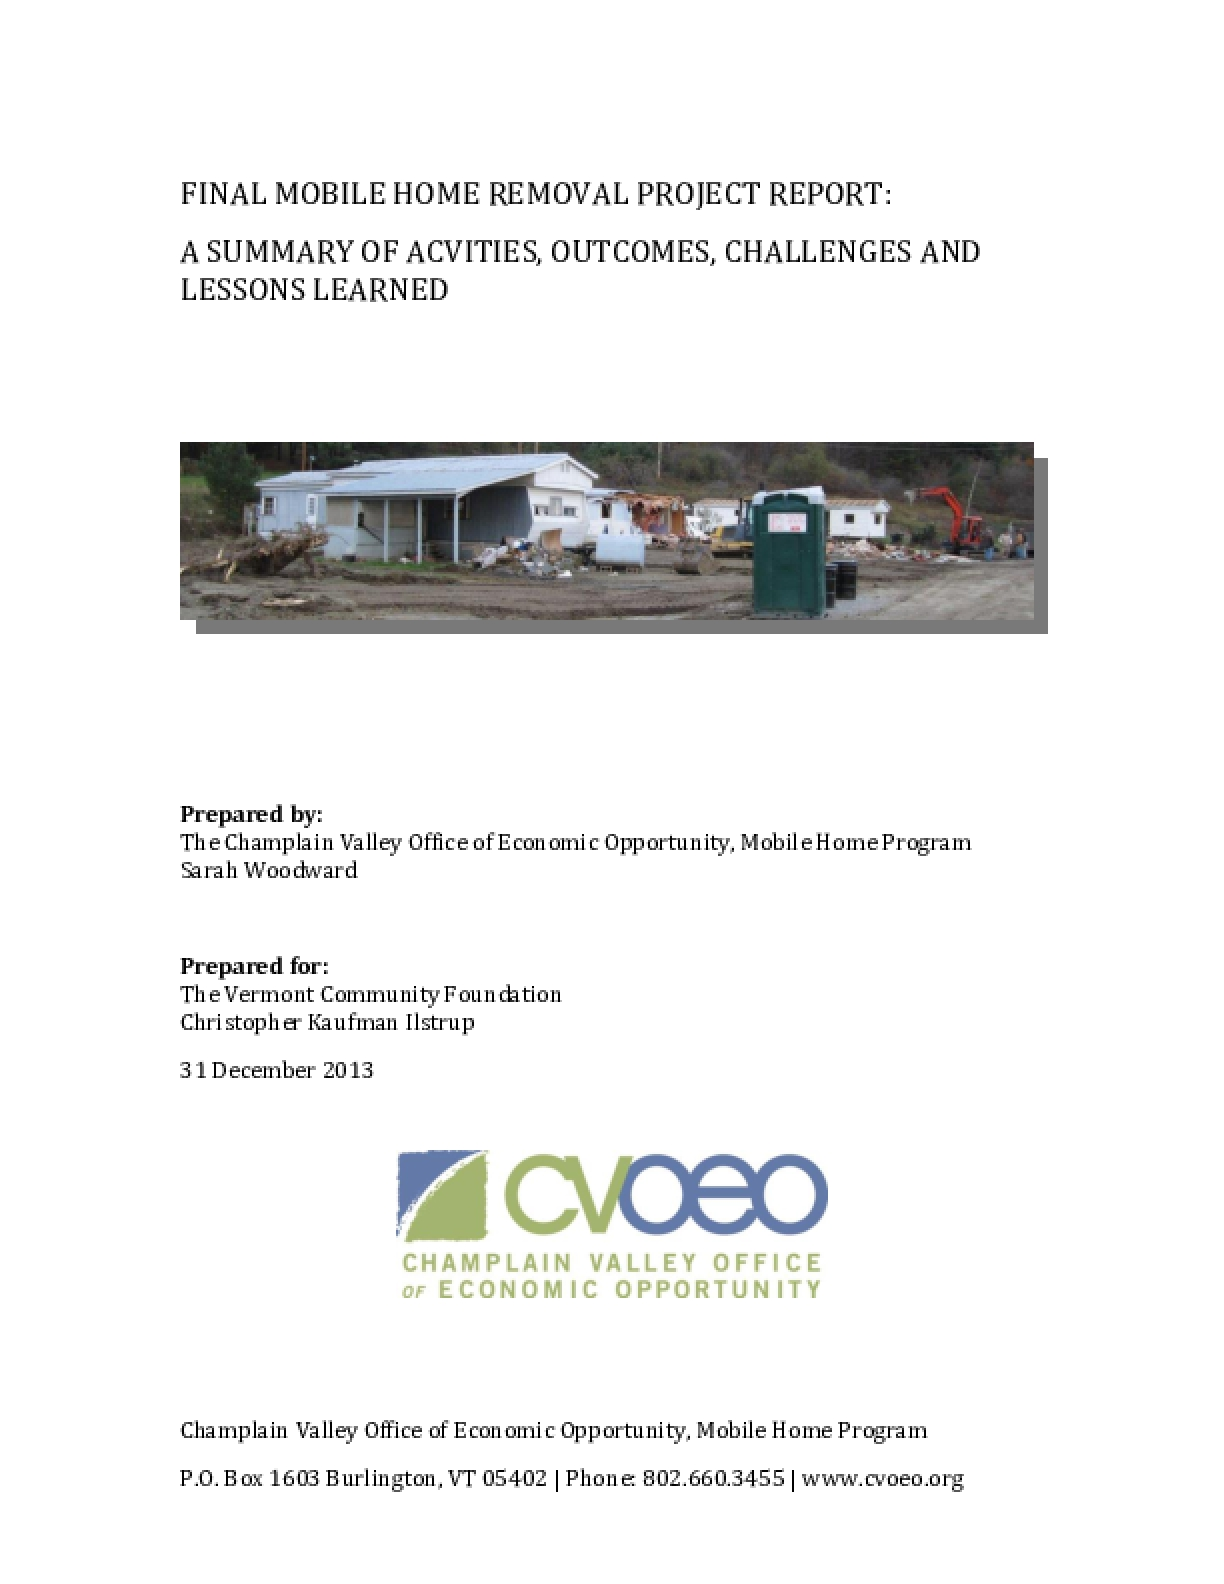 Final Mobile Home Removal Project Report: A Summary of Activities, Outcomes, Challenges and Lessons Learned